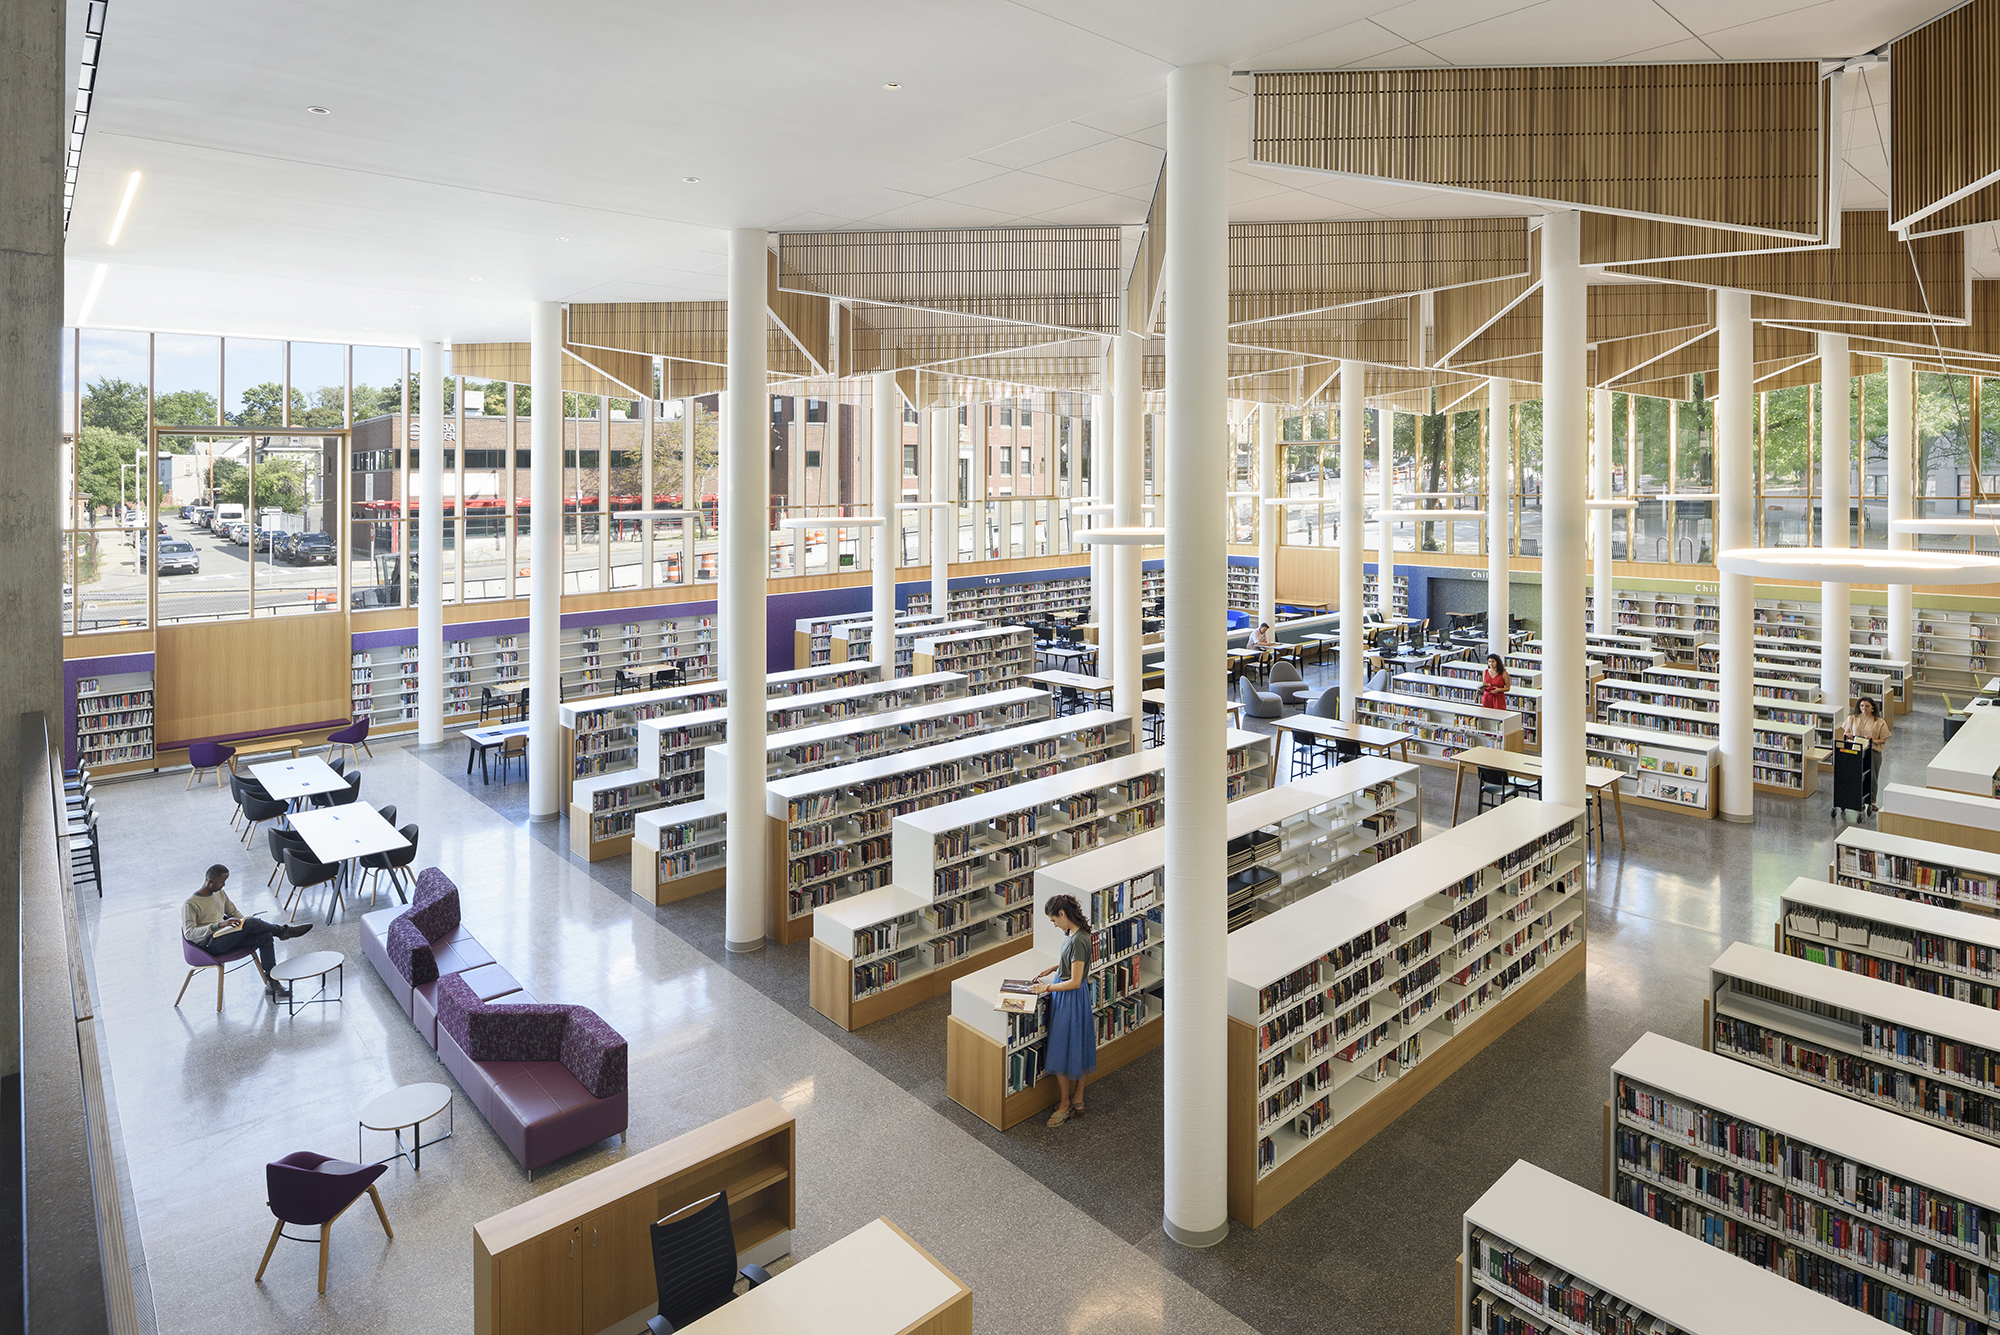 Please Vote for the Roxbury Branch Library as a Preservation Award Fan Favorite!